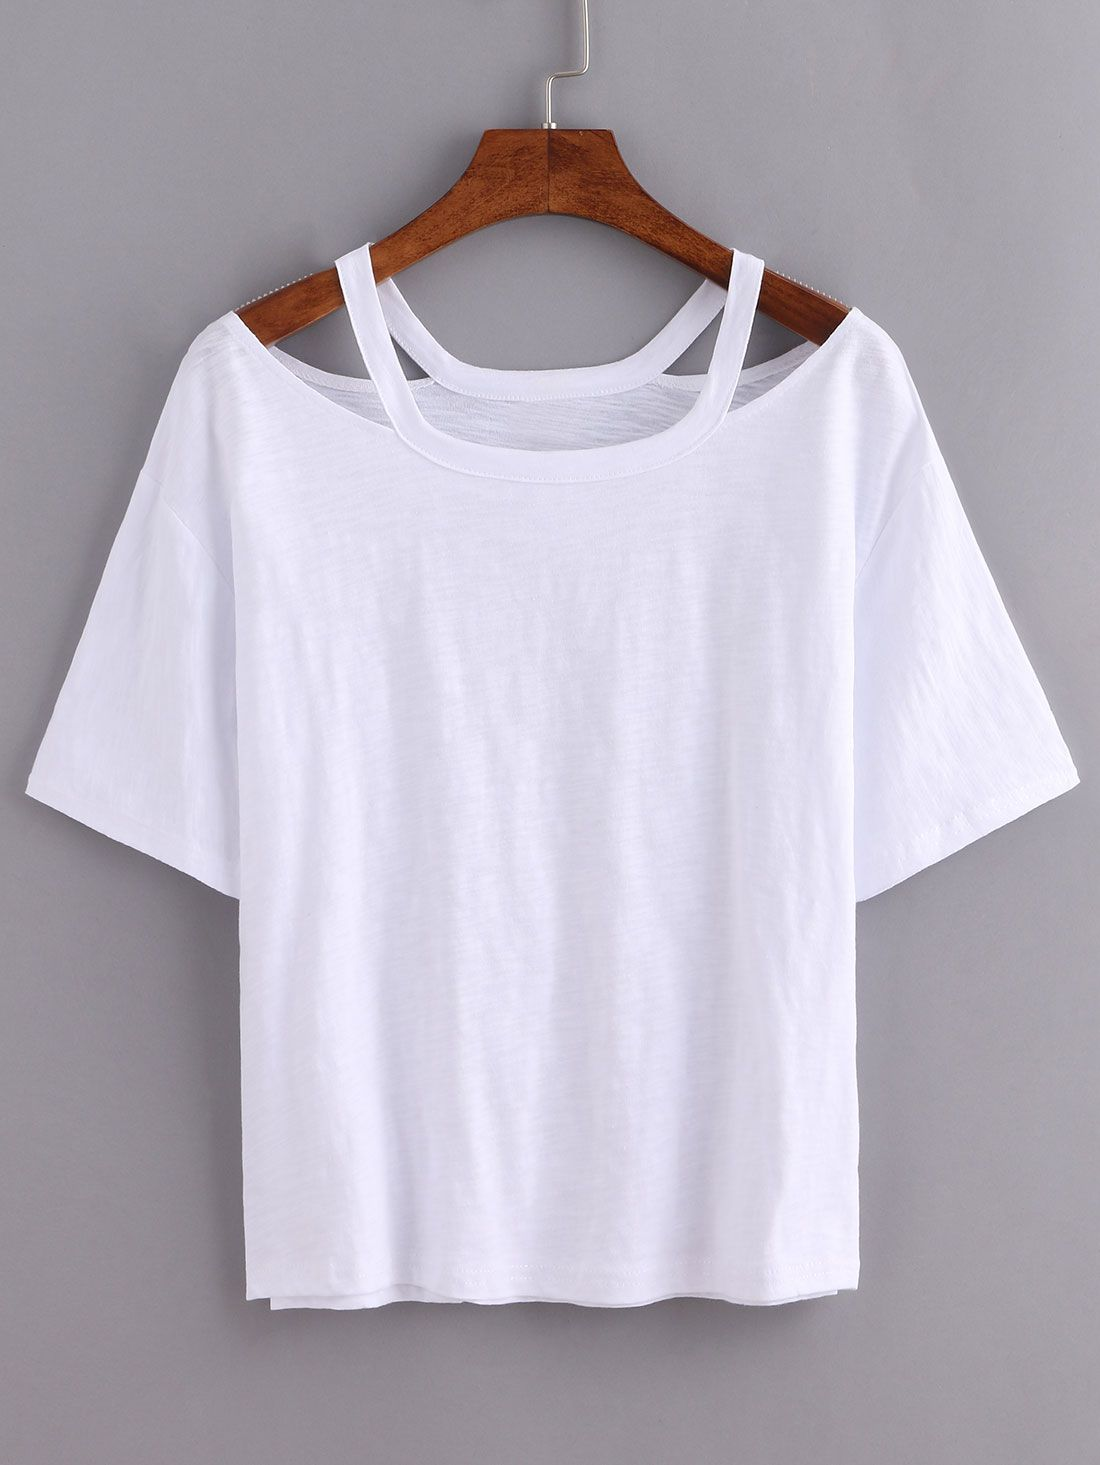 2e1127de63 Shop Cutout Loose-Fit White T-shirt online. SheIn offers Cutout Loose-Fit  White T-shirt & more to fit your fashionable needs.